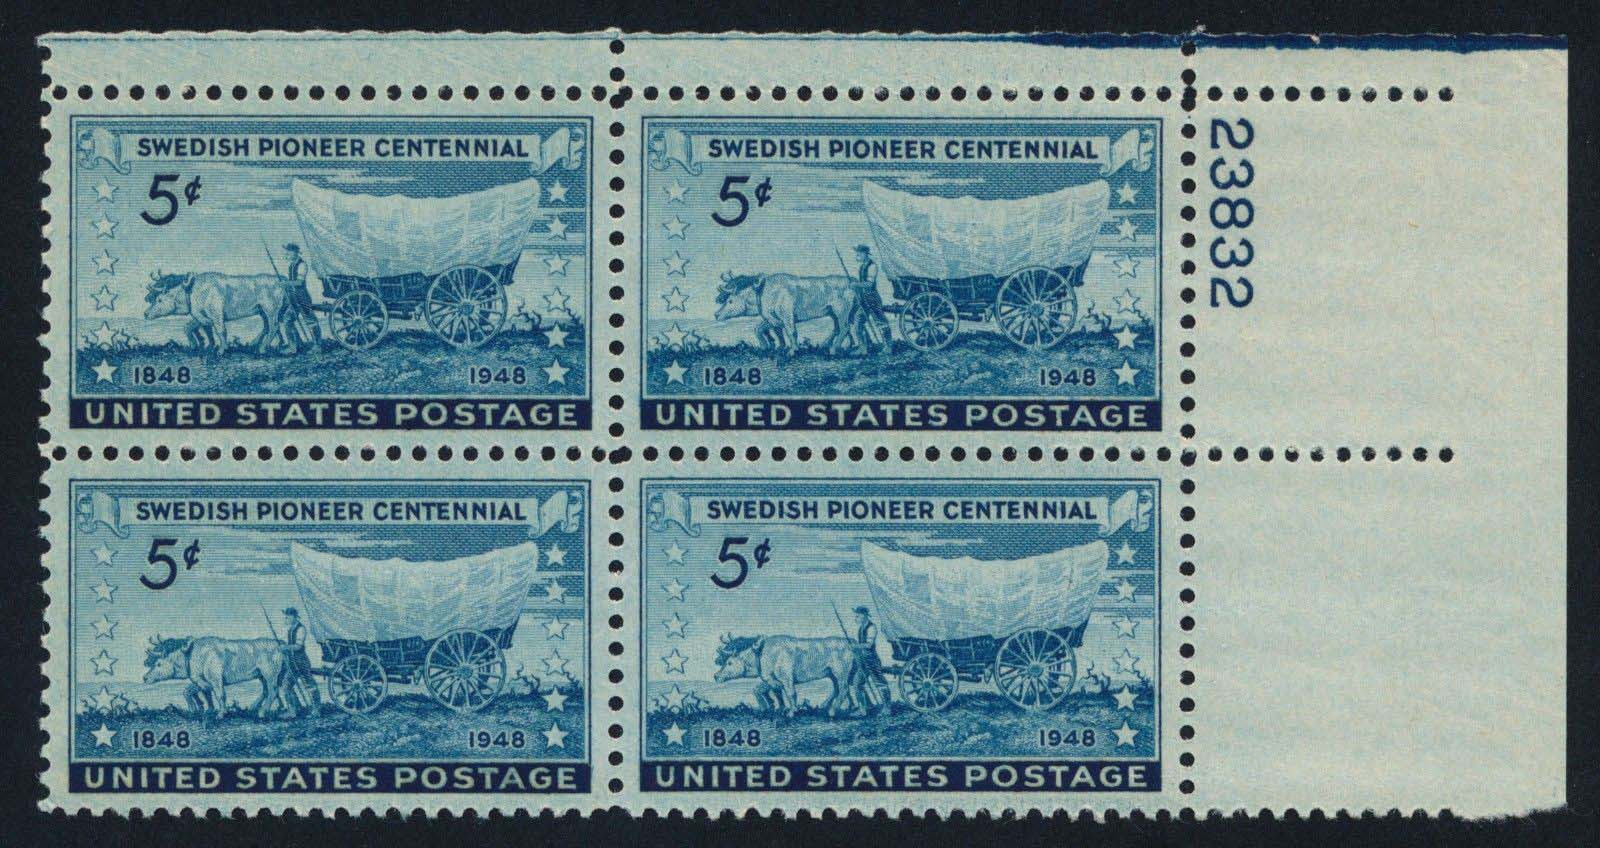 "Scott 0958 Plate Block (5 cents) <p> <a href=""/images/USA-Scott-0958-PB.jpg""><font color=green><b>View the image</a></b></font>"